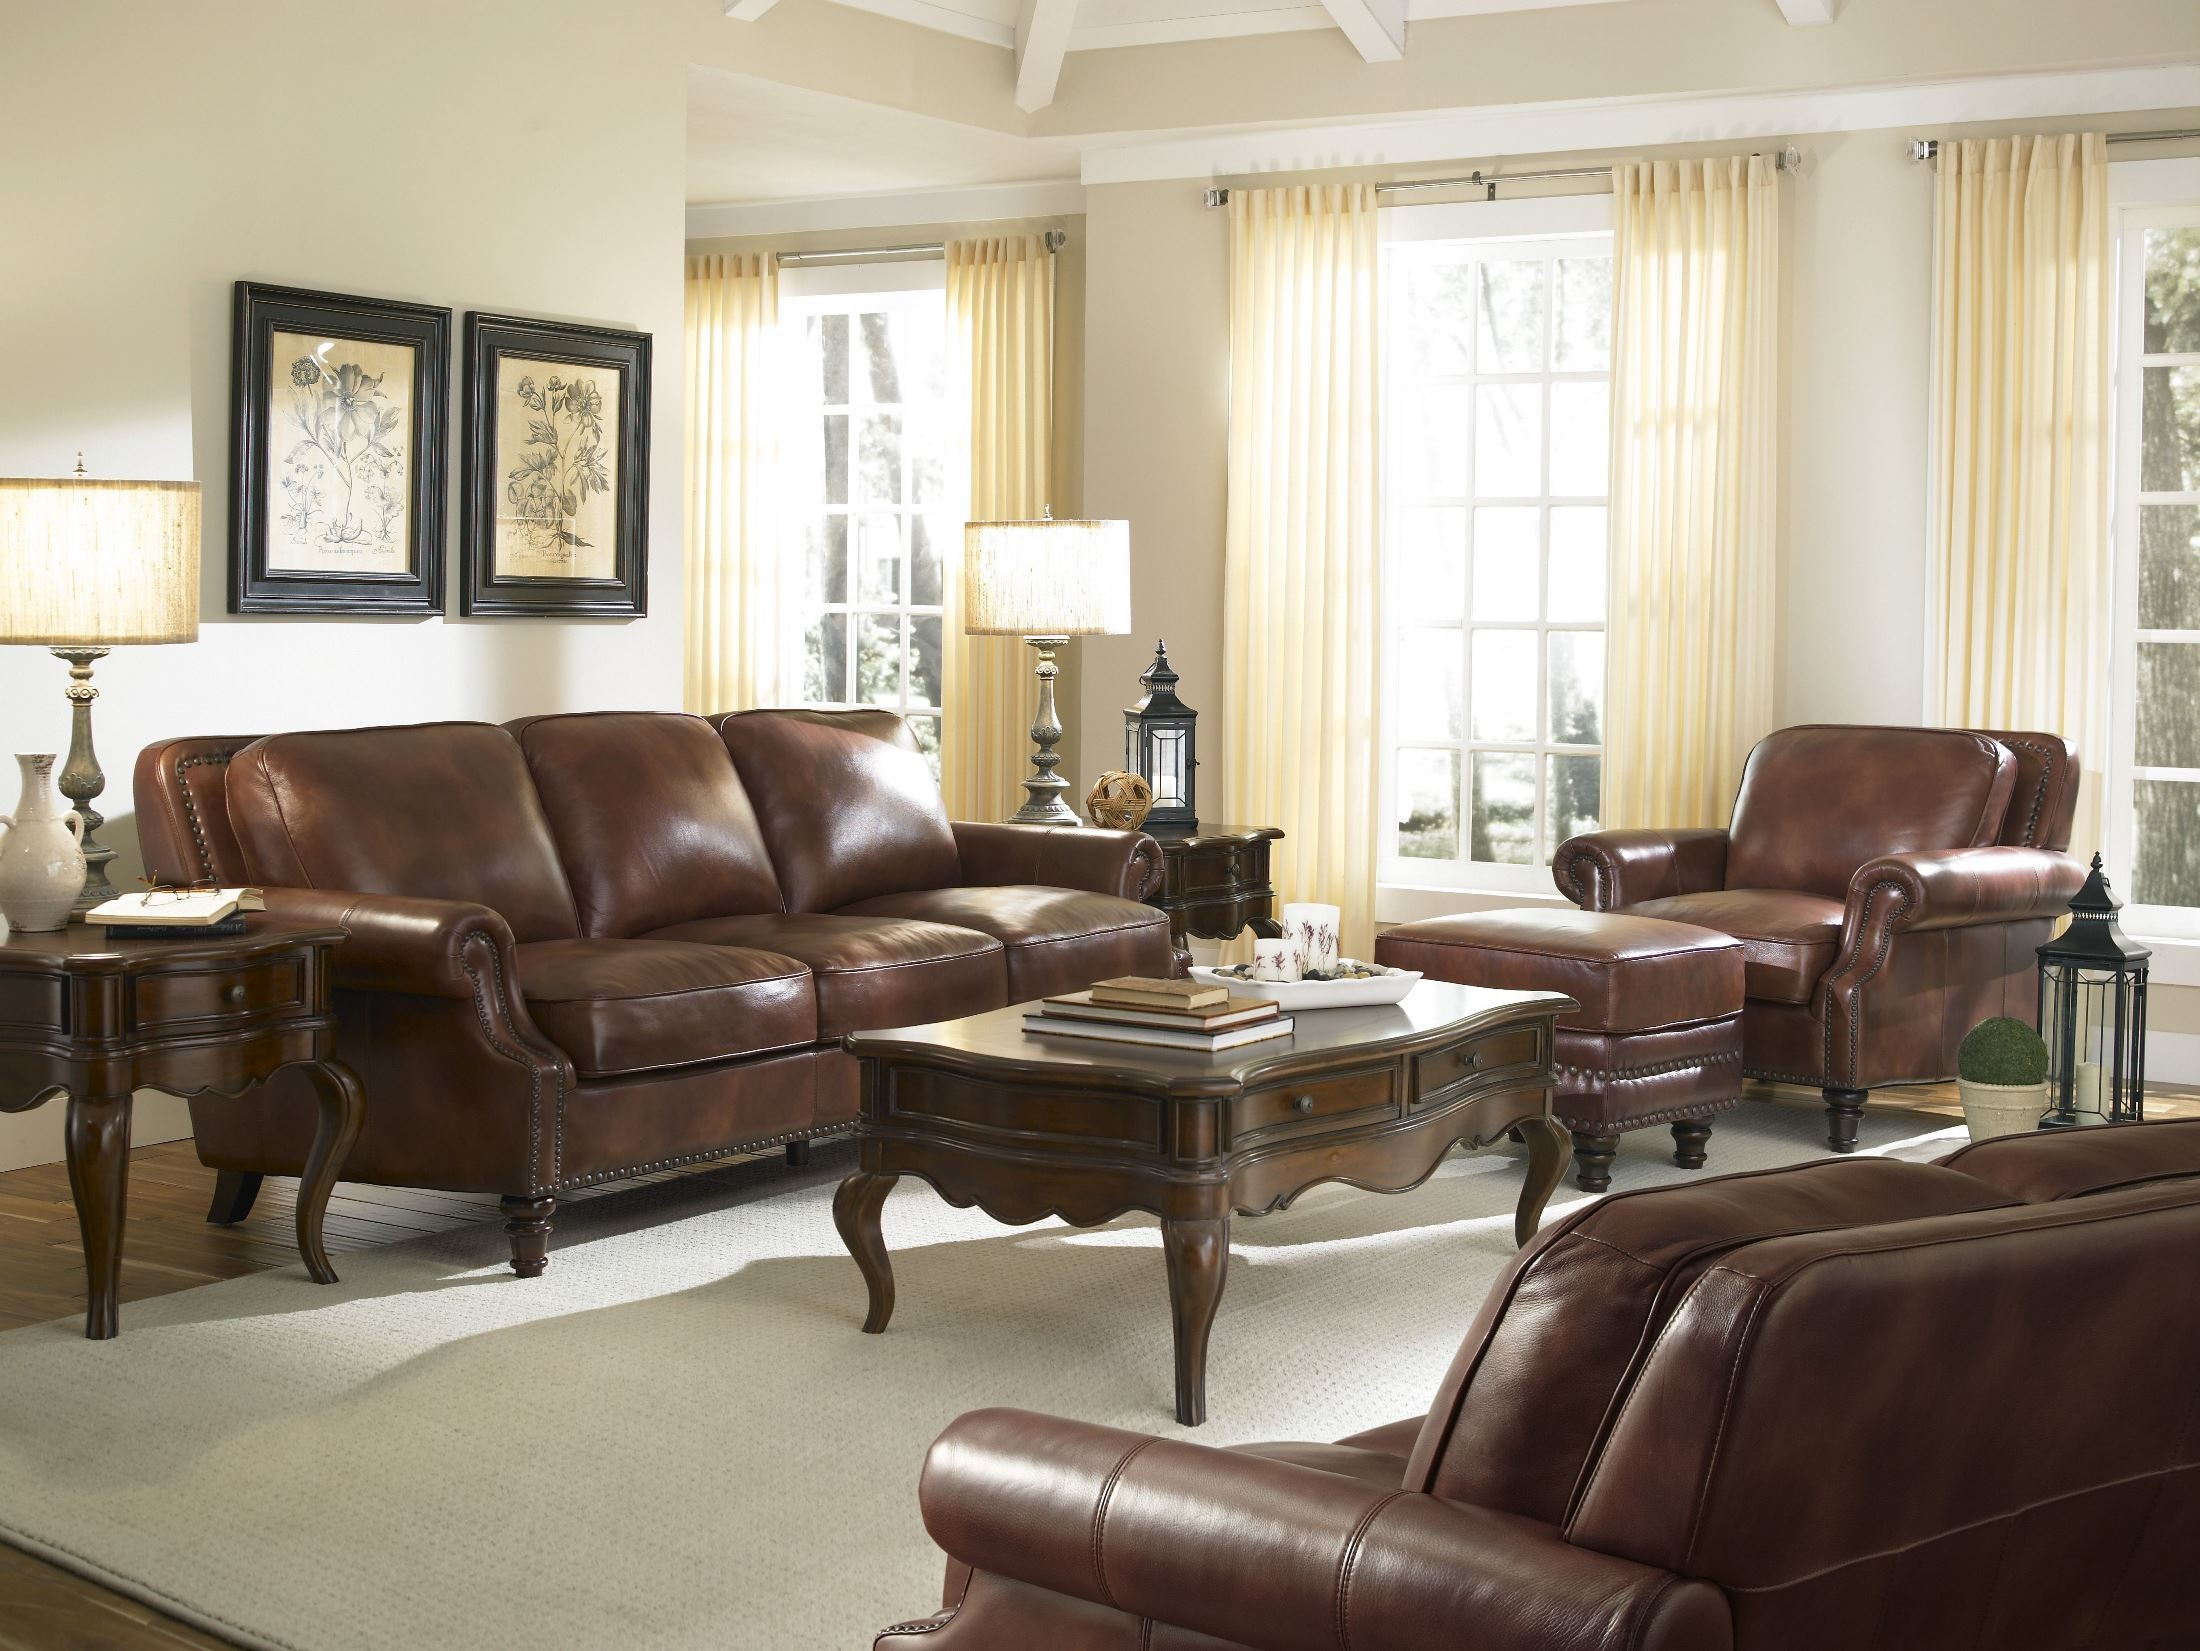 Bentley rustic savauge leather living room set from Pics of living room sets